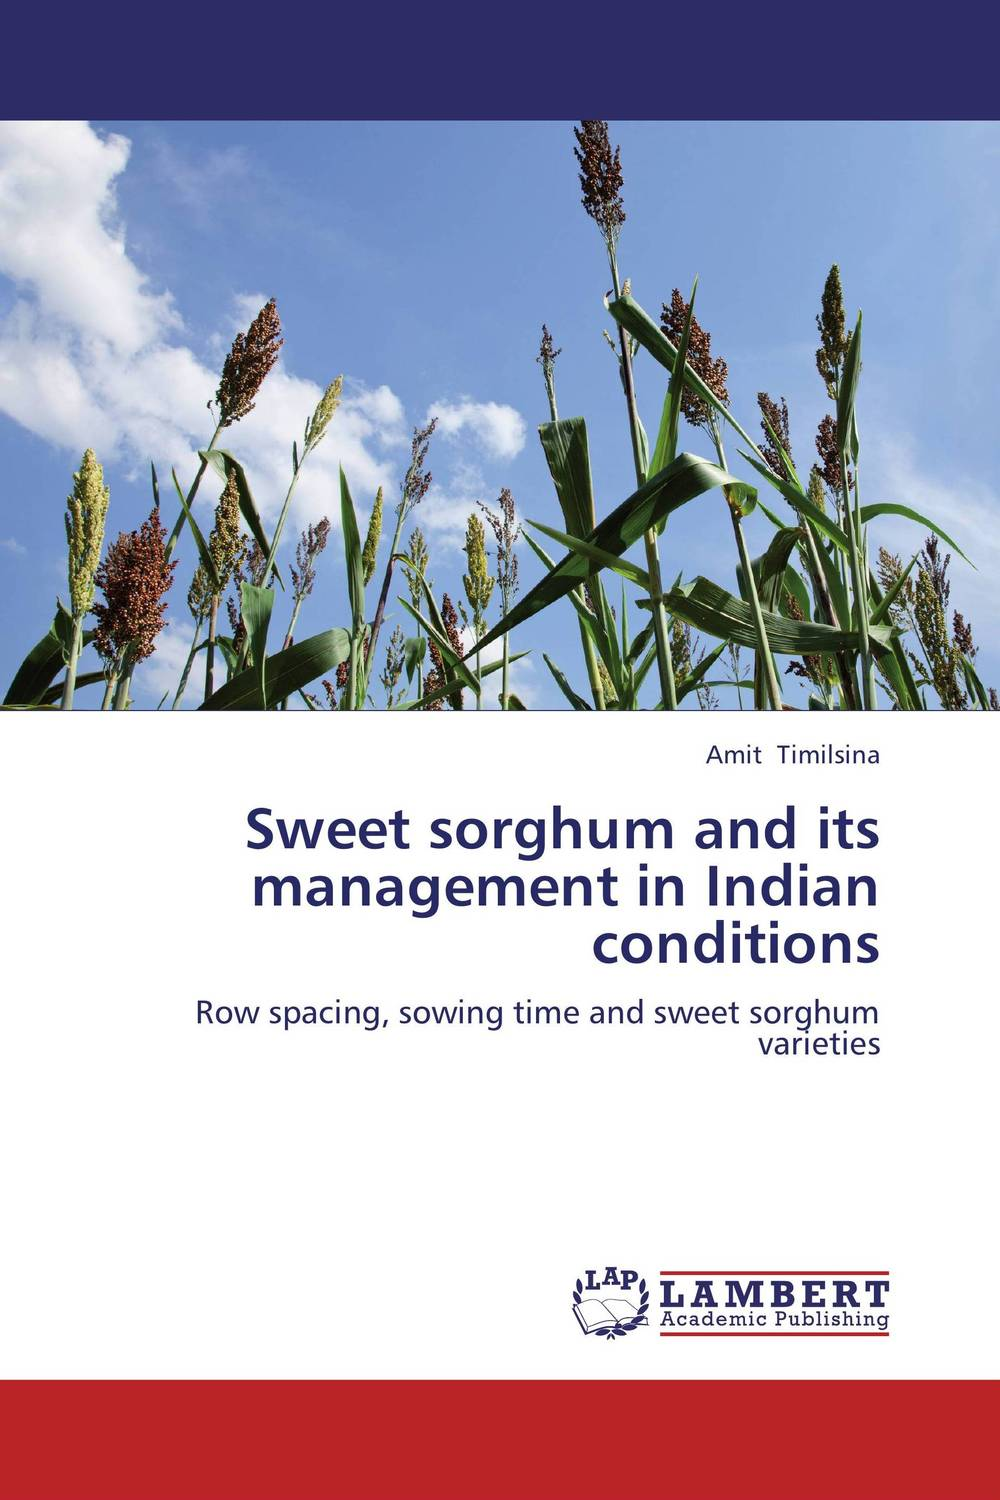 Sweet sorghum and its management in Indian conditions sadat khattab usama abdul raouf and tsutomu kodaki bio ethanol for future from woody biomass